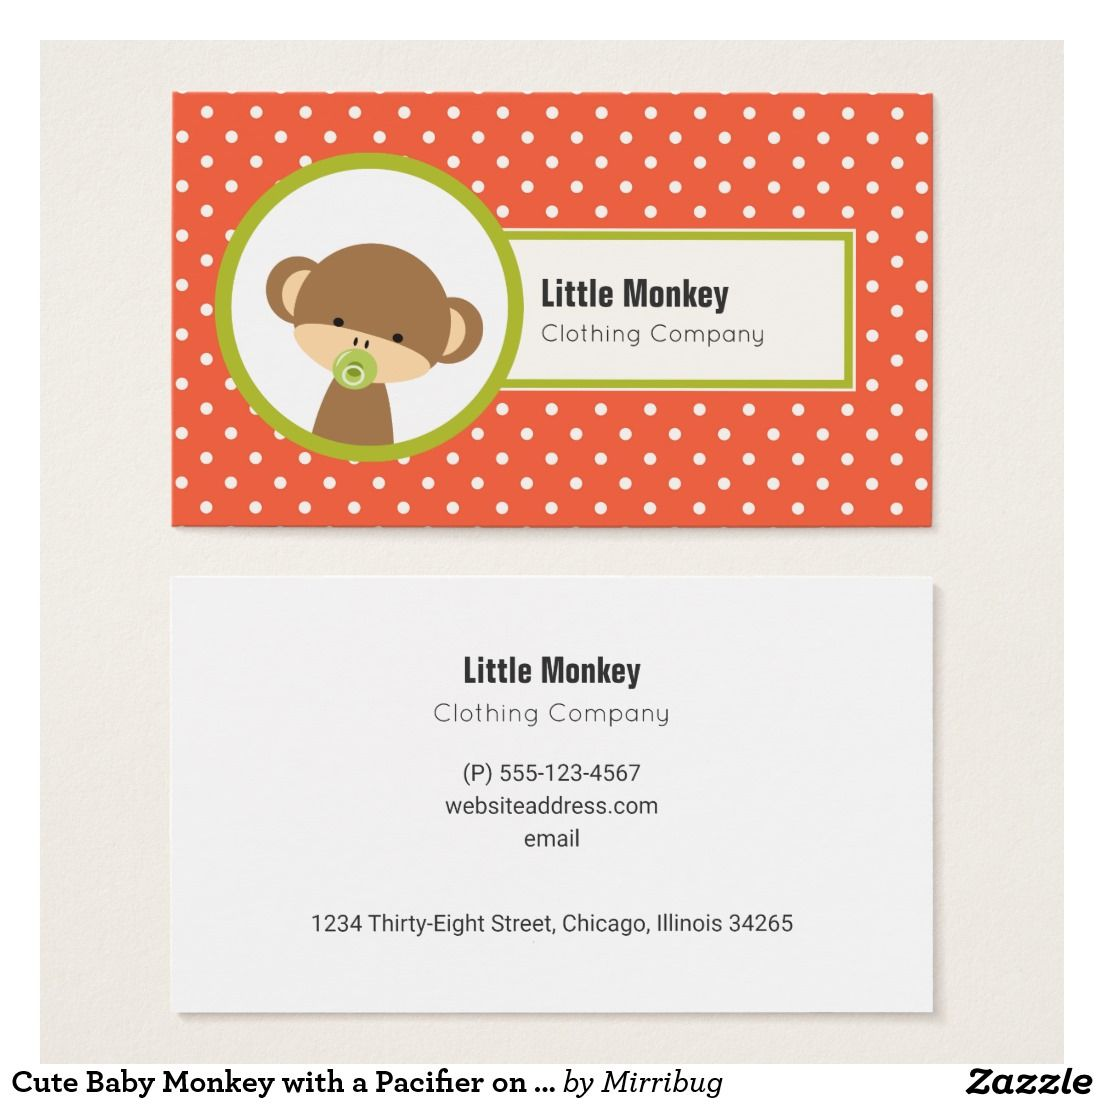 Cute Baby Monkey with a Pacifier on Polka Dots Business Card ...